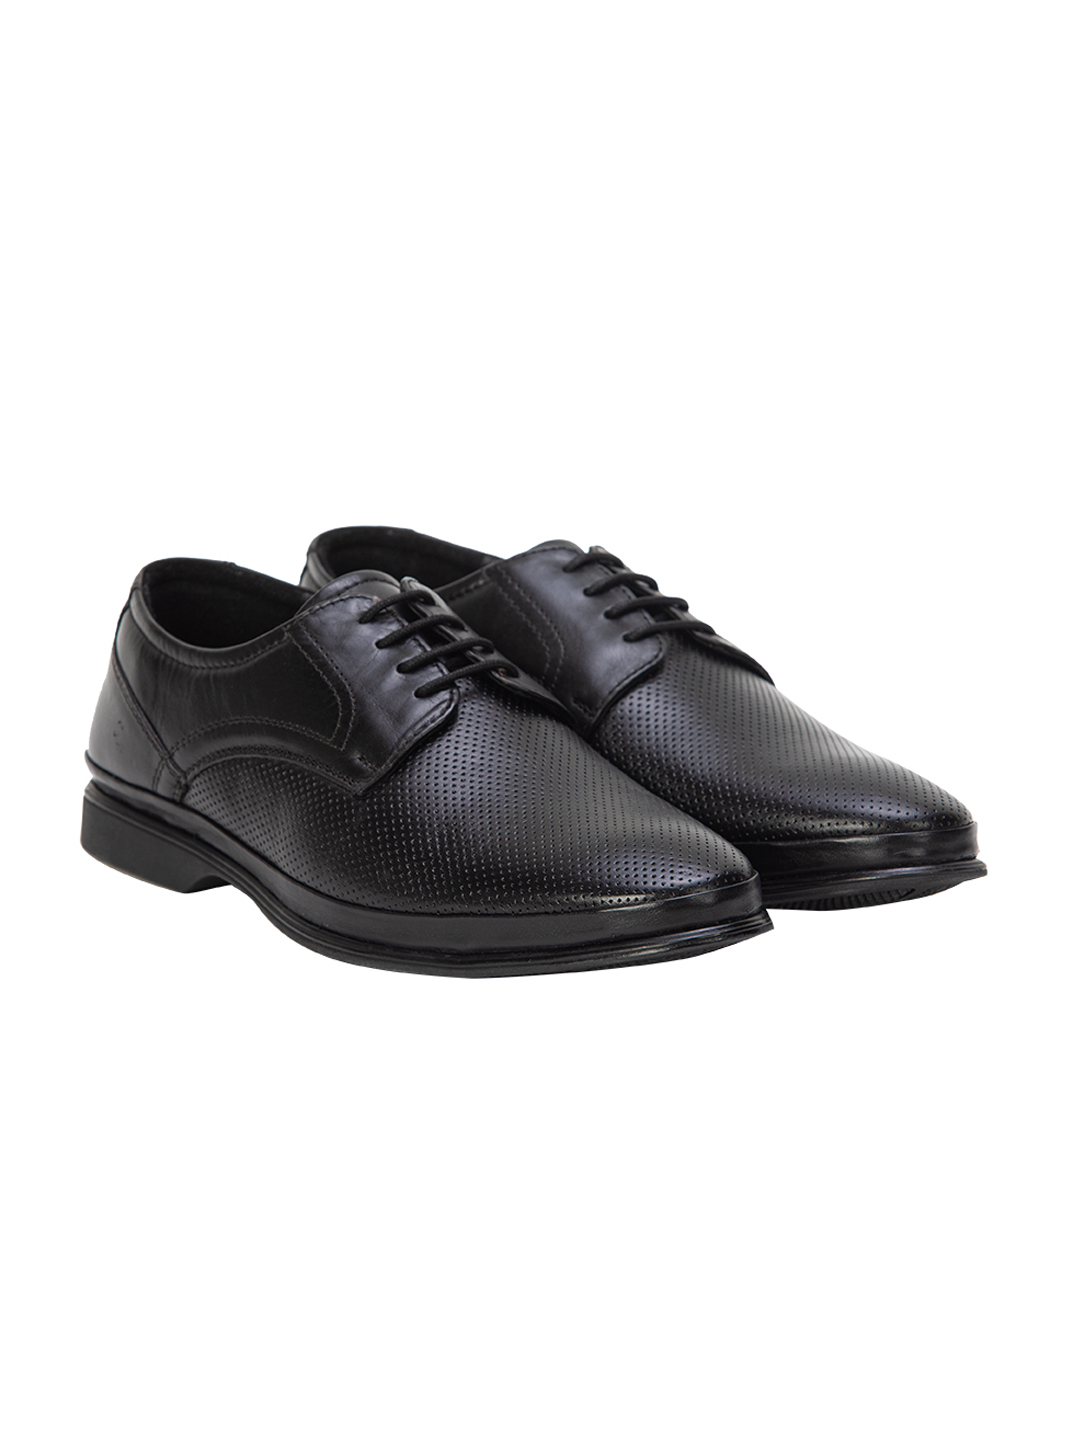 Buy Von Wellx Germany Comfort Black Coen Shoes Online in Ahmedabad